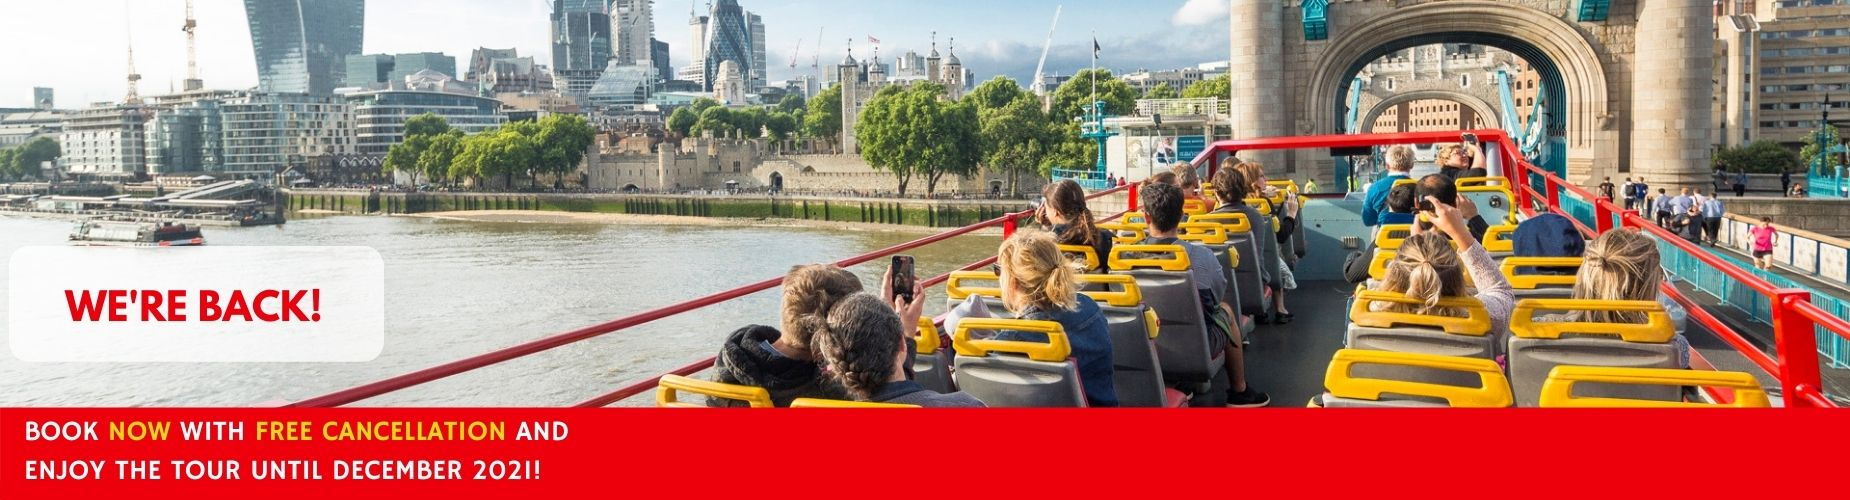 Free cancellation London City Tour